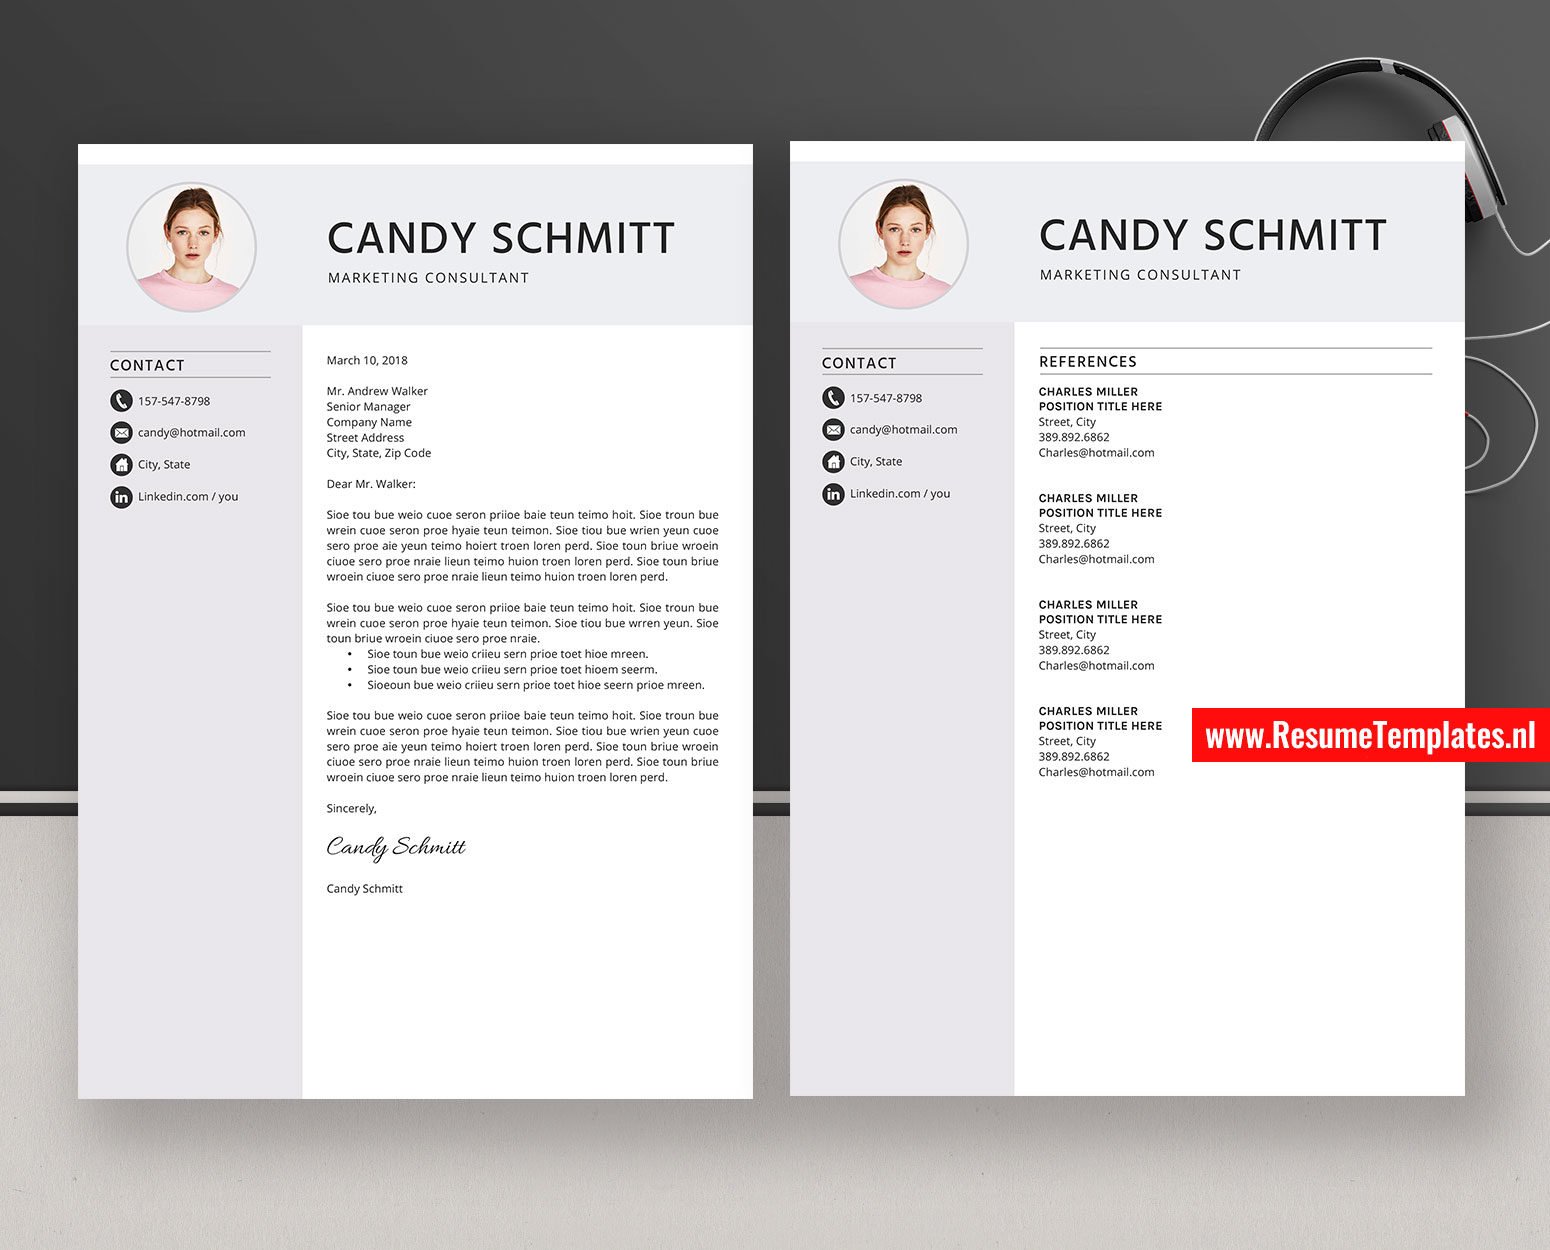 Cover Letter Template Download Microsoft Word from www.resumetemplates.nl